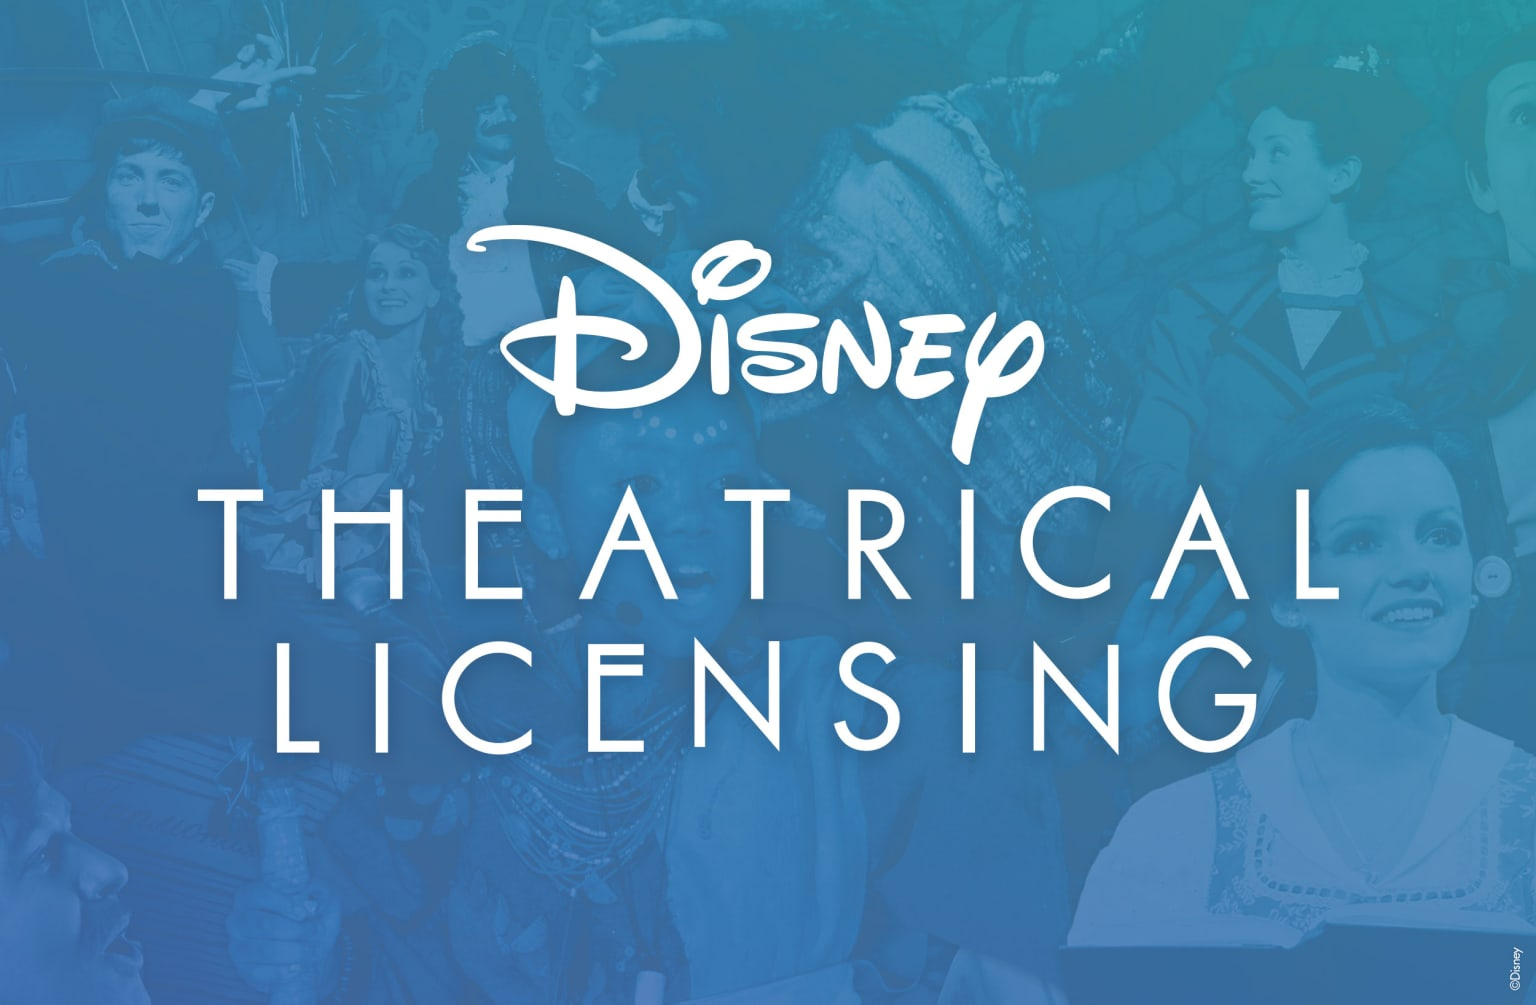 Disney Theatrical Licensing Branding